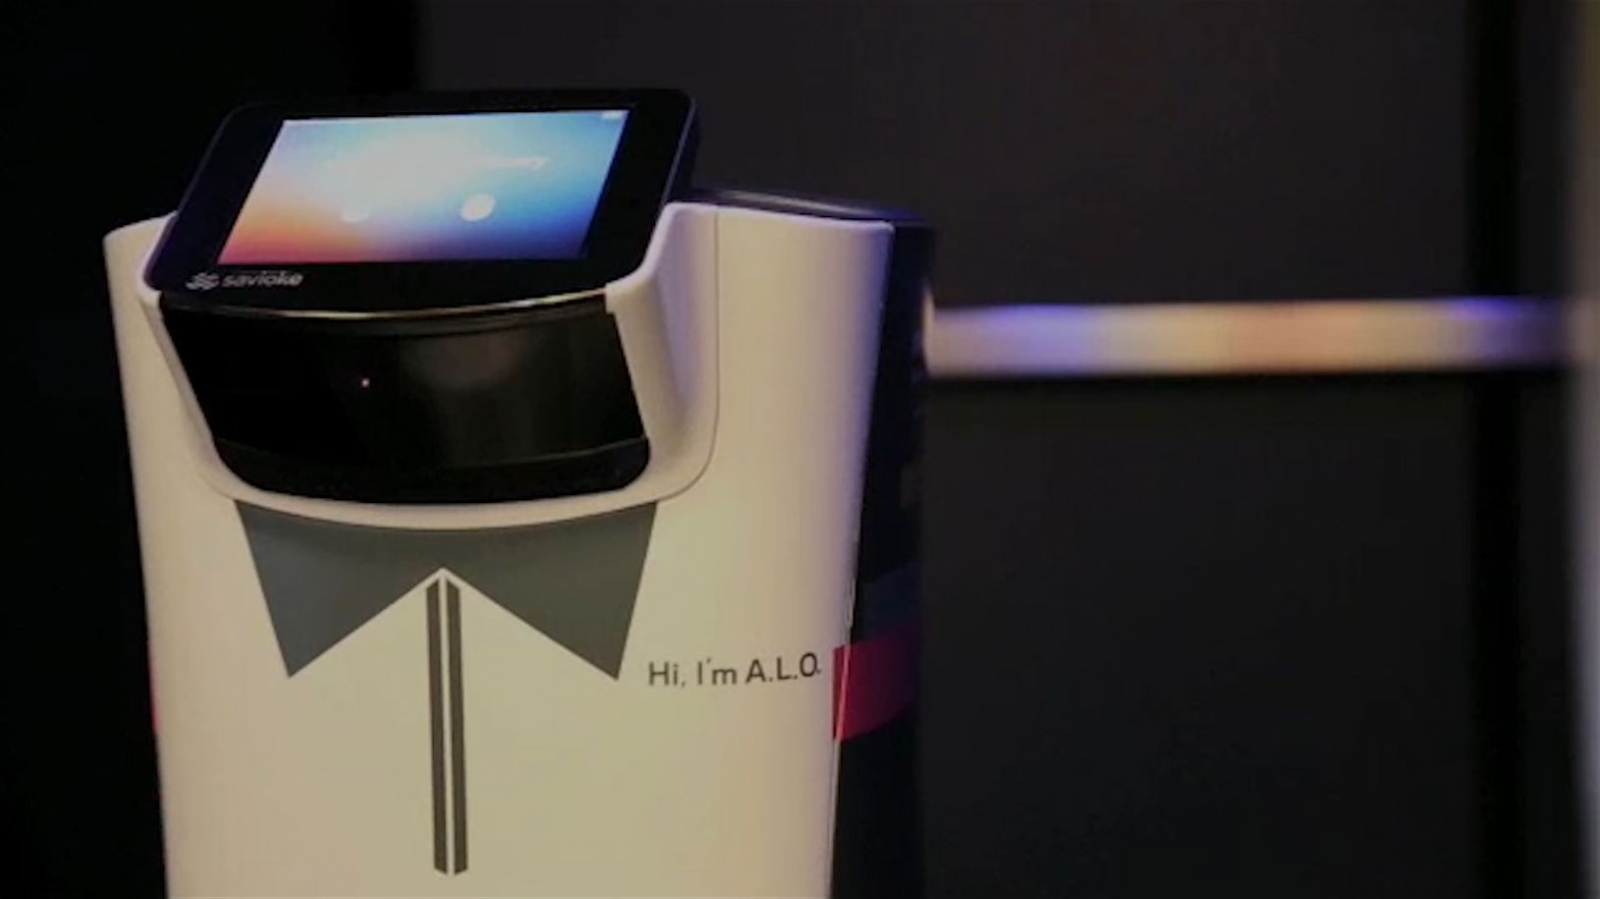 Meet Botlr: The World's First Robot Butler